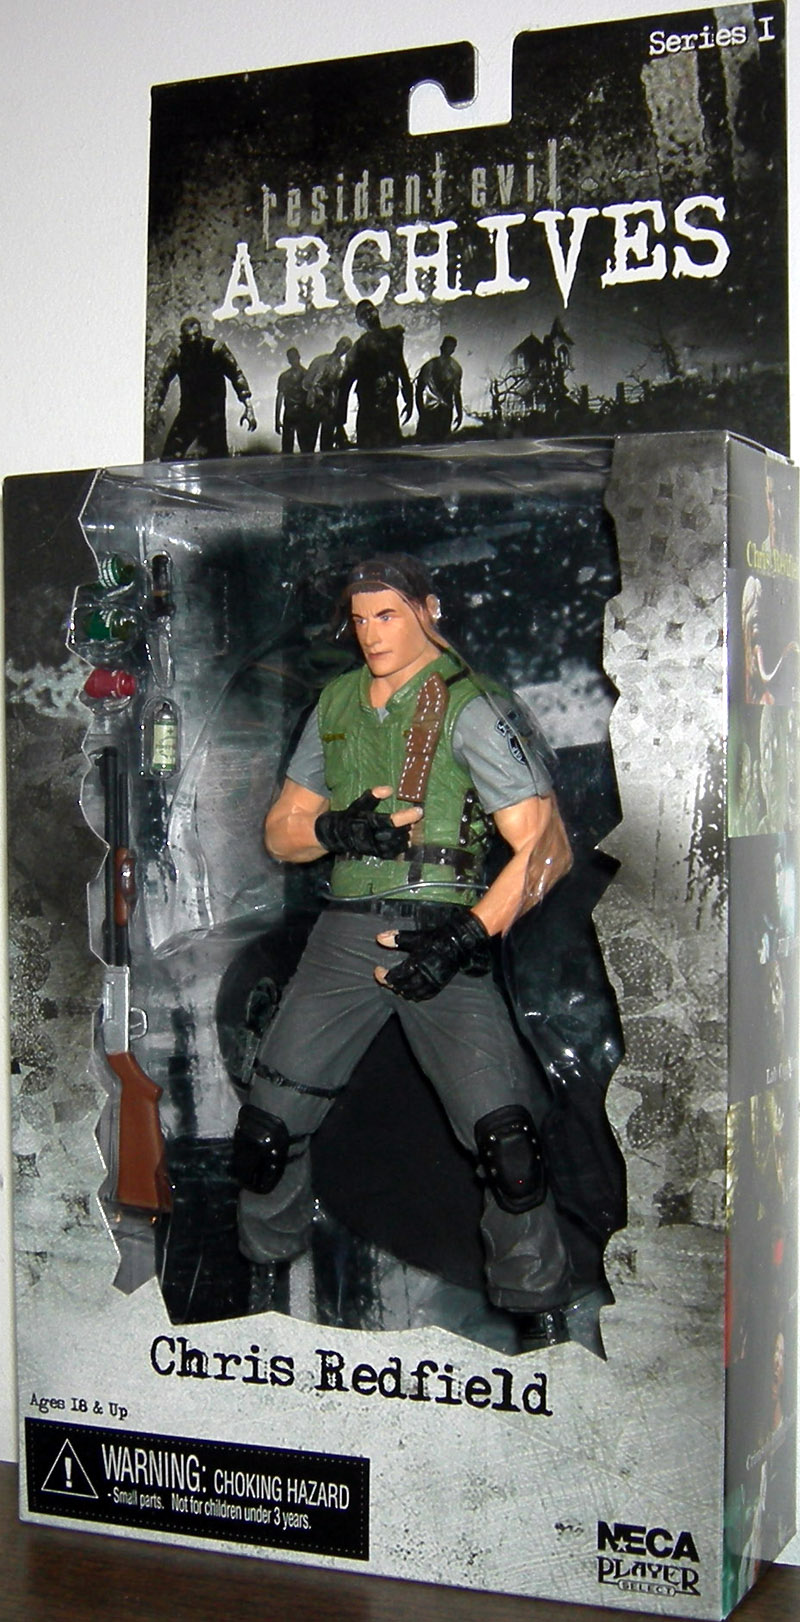 Chris Redfield (Archives)